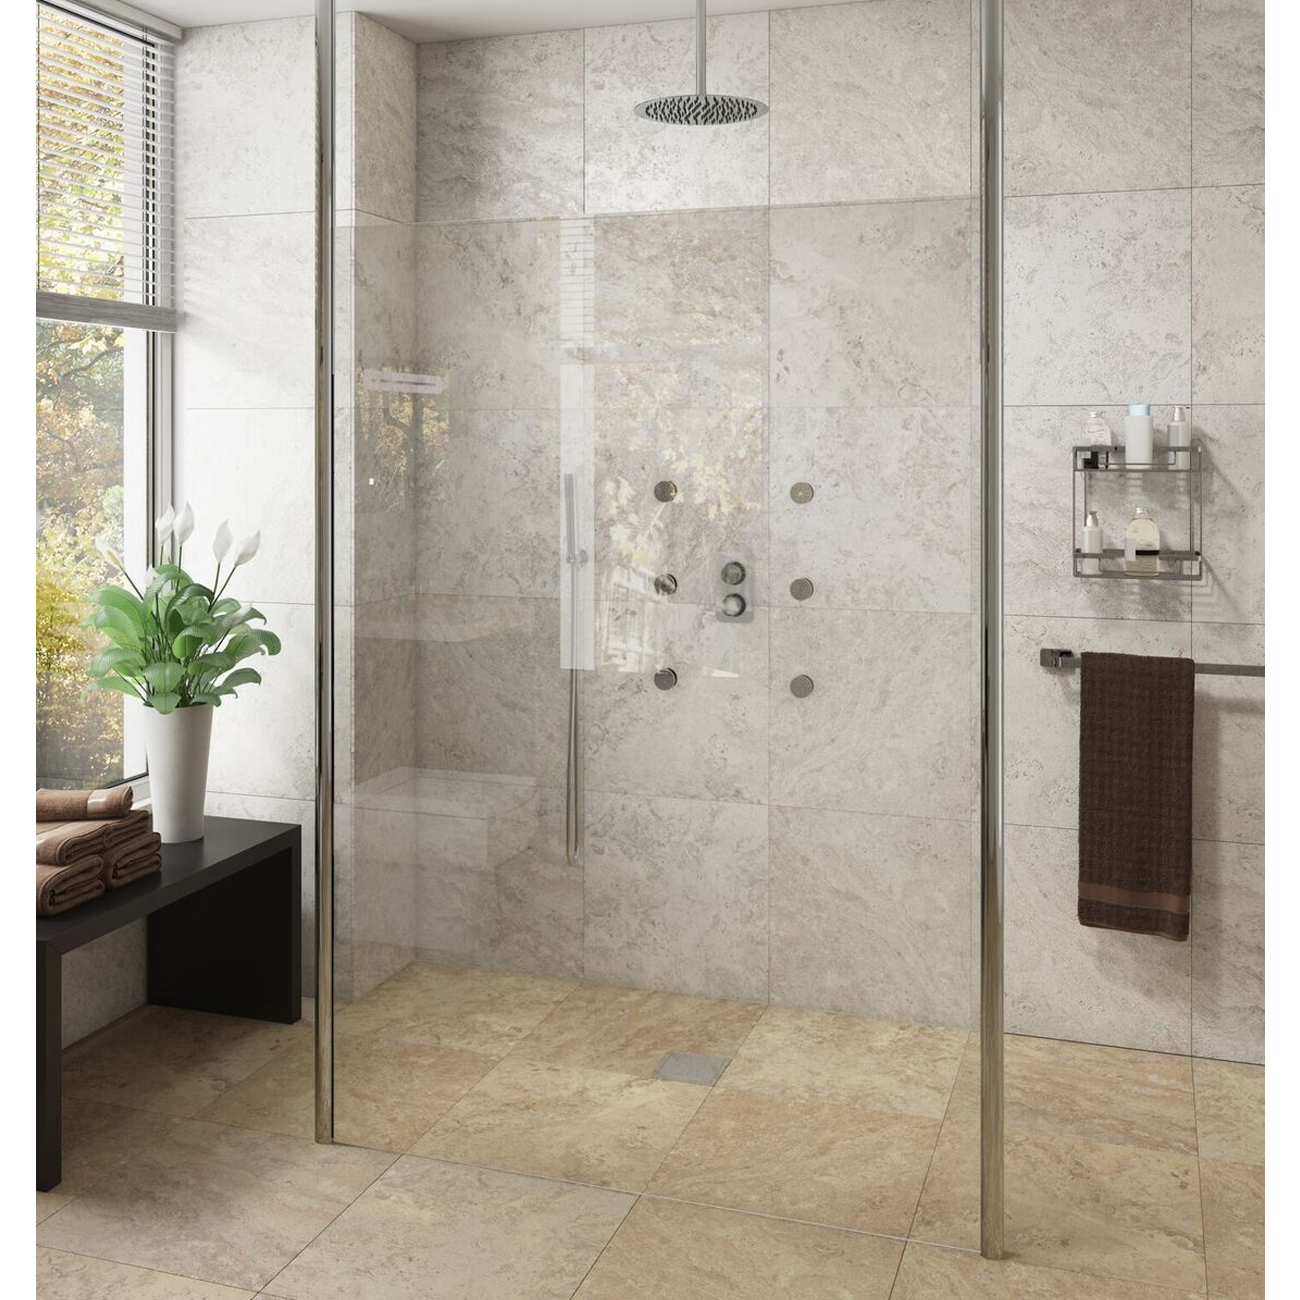 Cali Lana Free Standing Wet Room Screen 2000mm High x 1000mm Wide - 10mm Glass Only